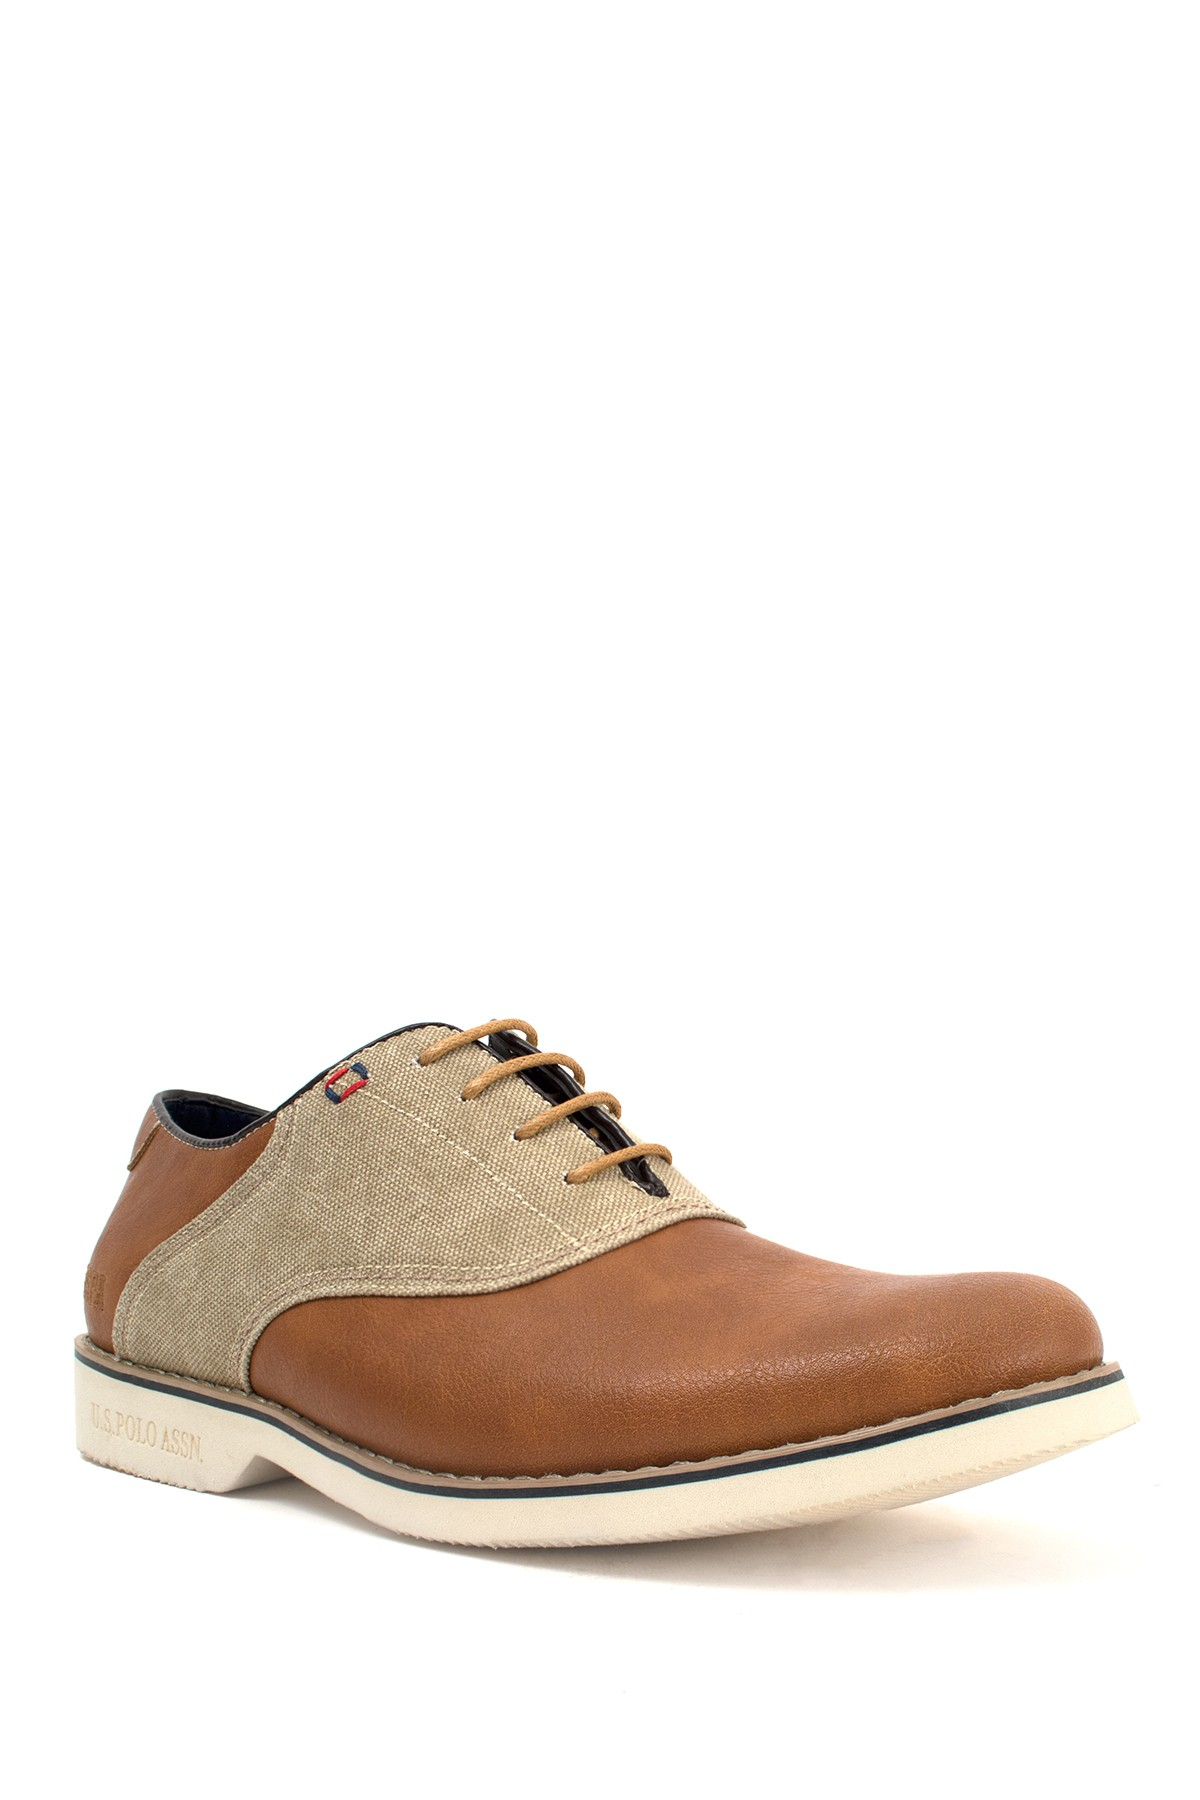 Clark Mobile Brown Shoes